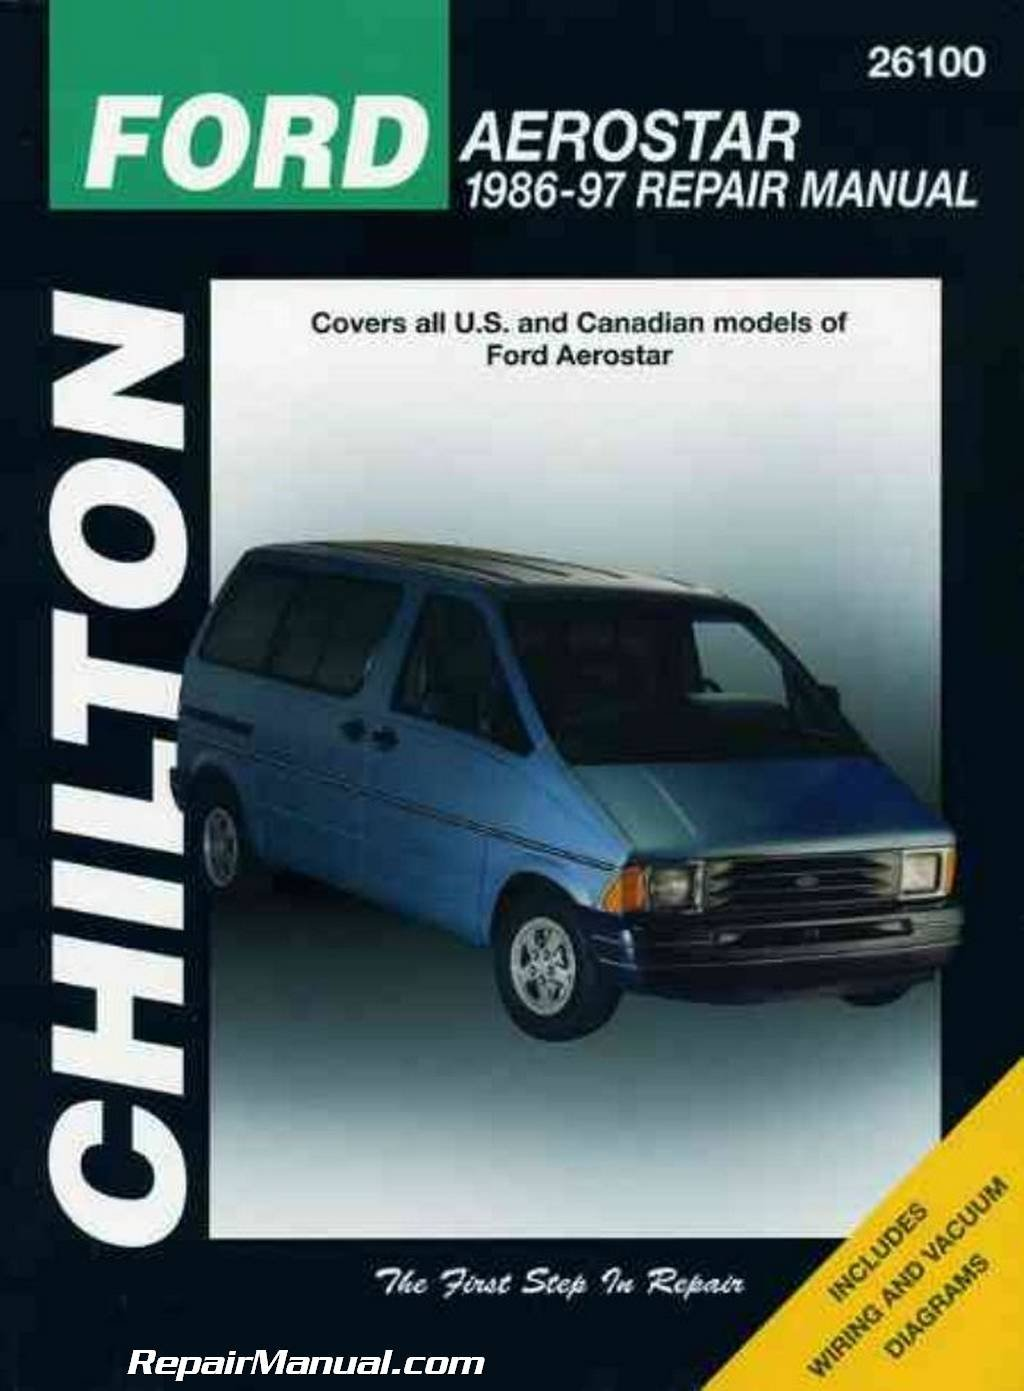 CH26100 Chilton Ford Aerostar 1986-1997 Repair Manual: Manufacturer:  Amazon.com: Books